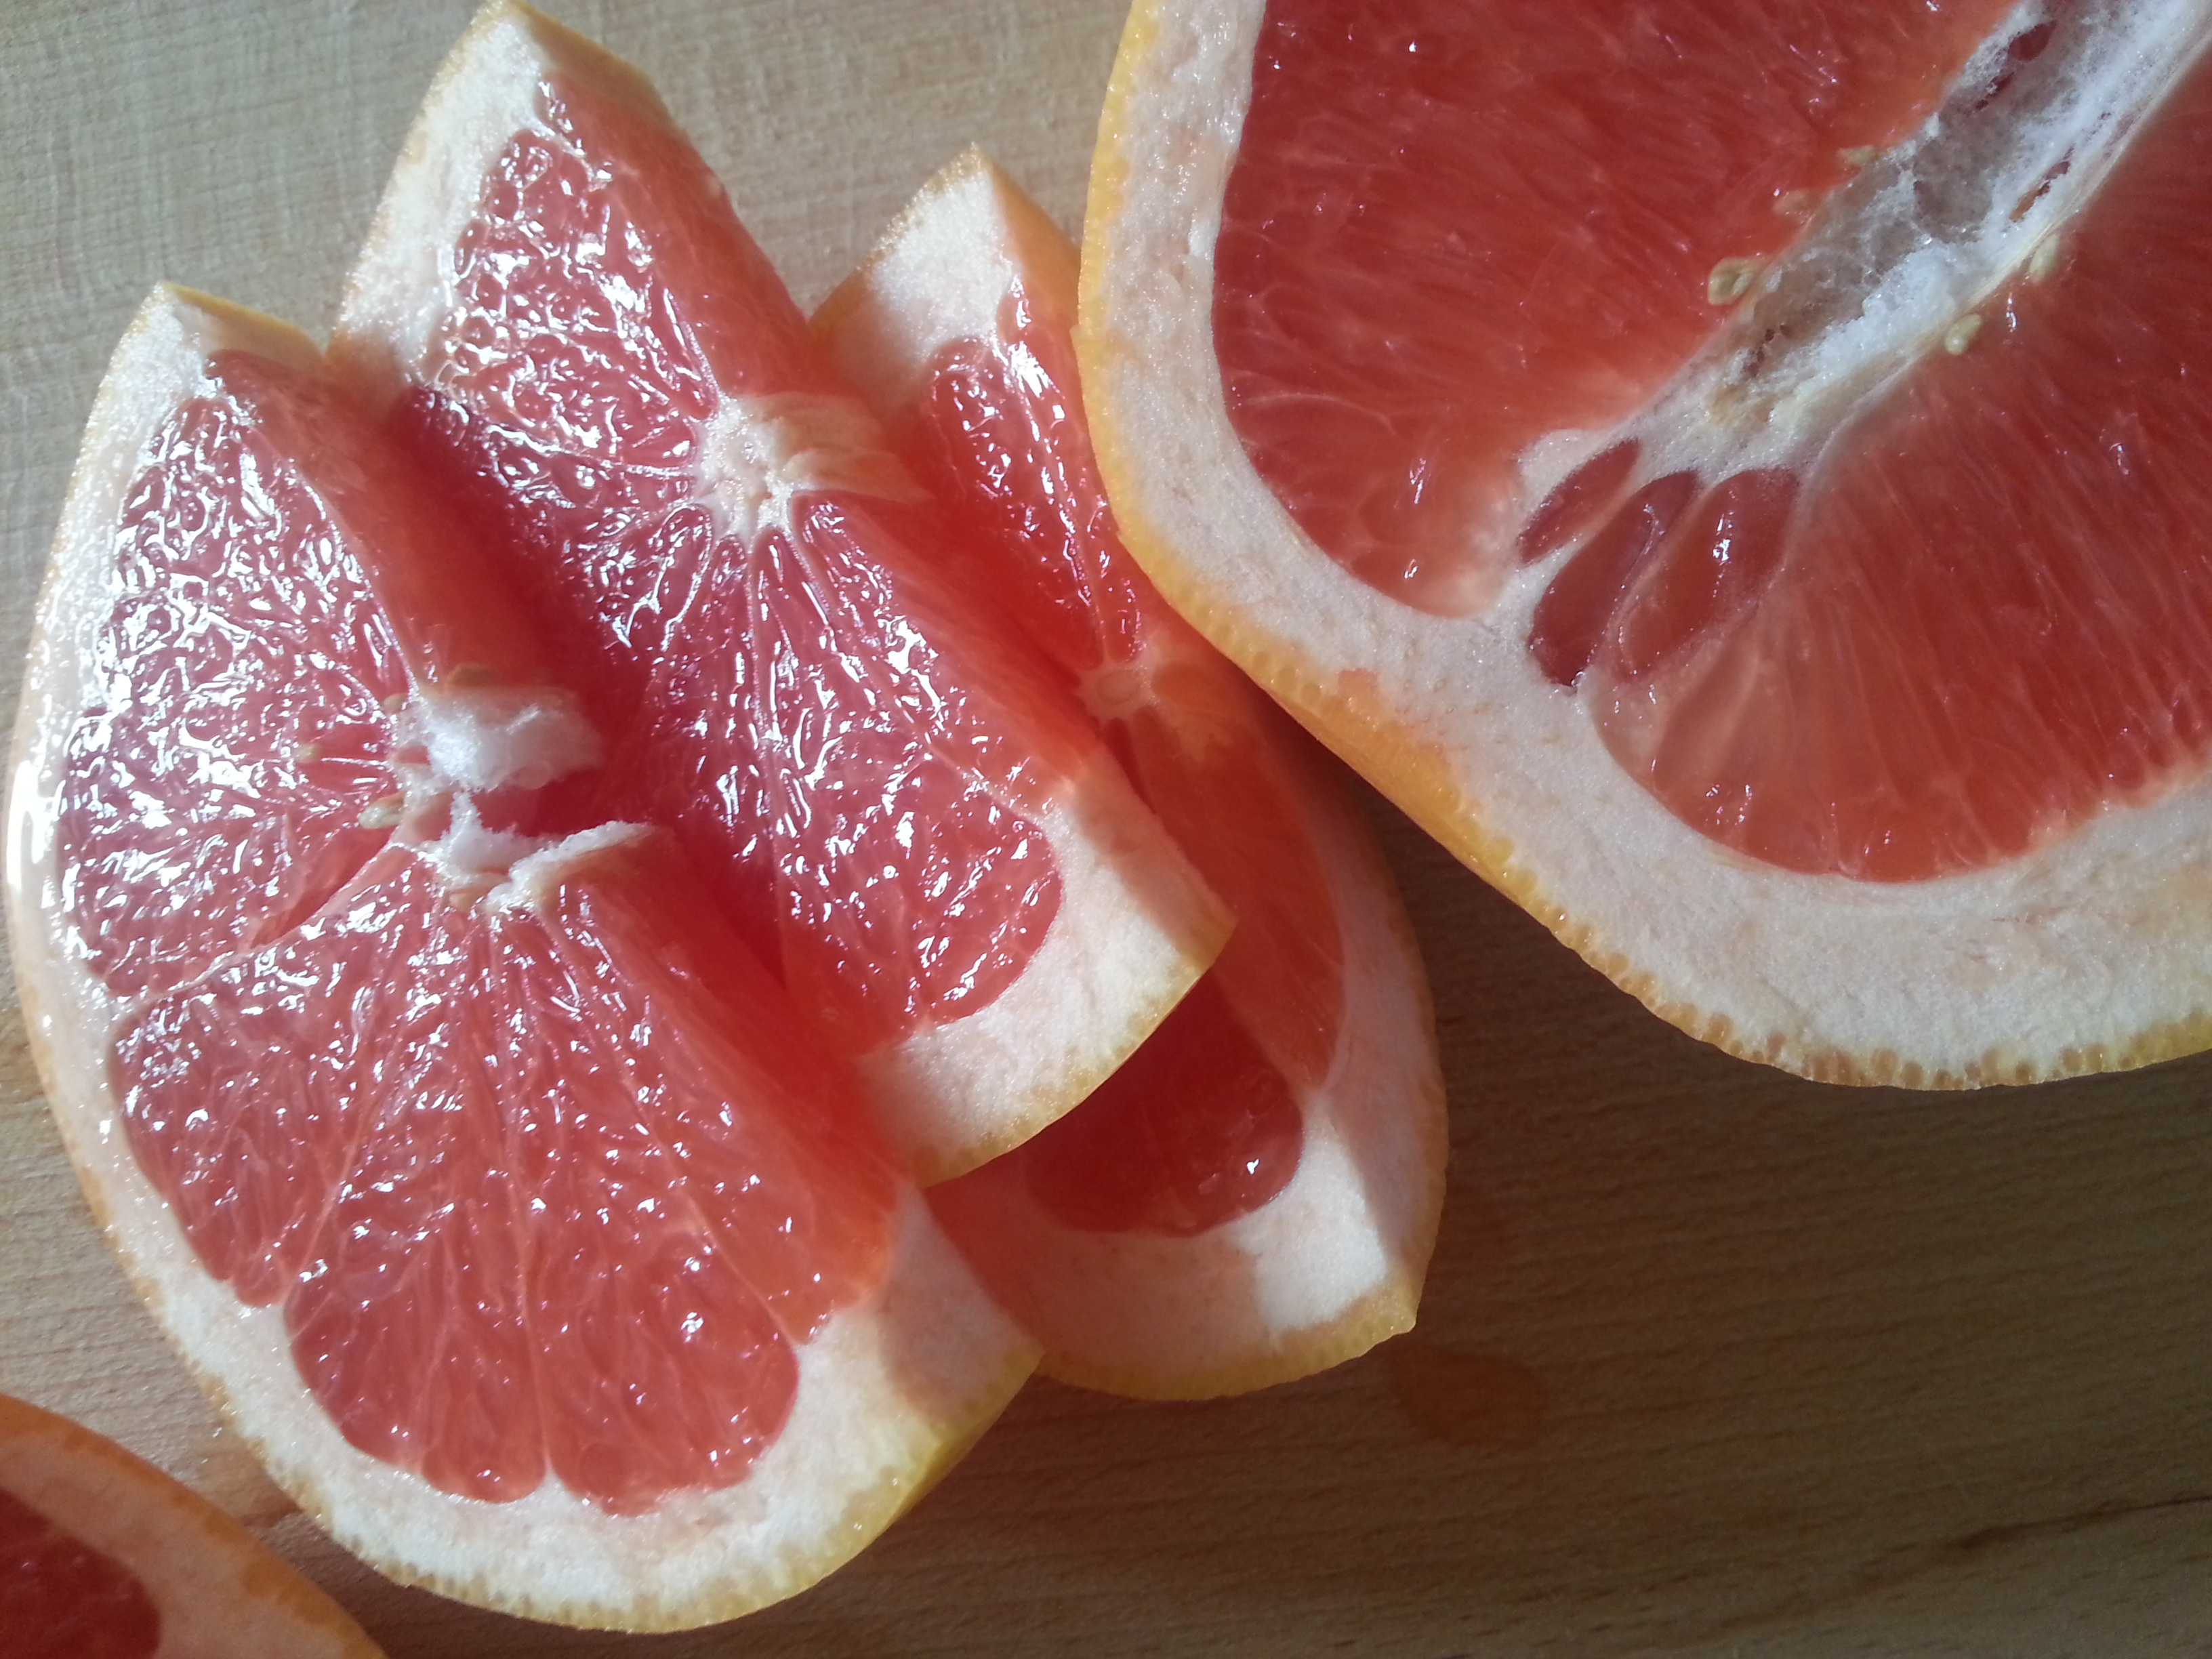 Slices or wedges are a handy way of enjoying grapefruit!